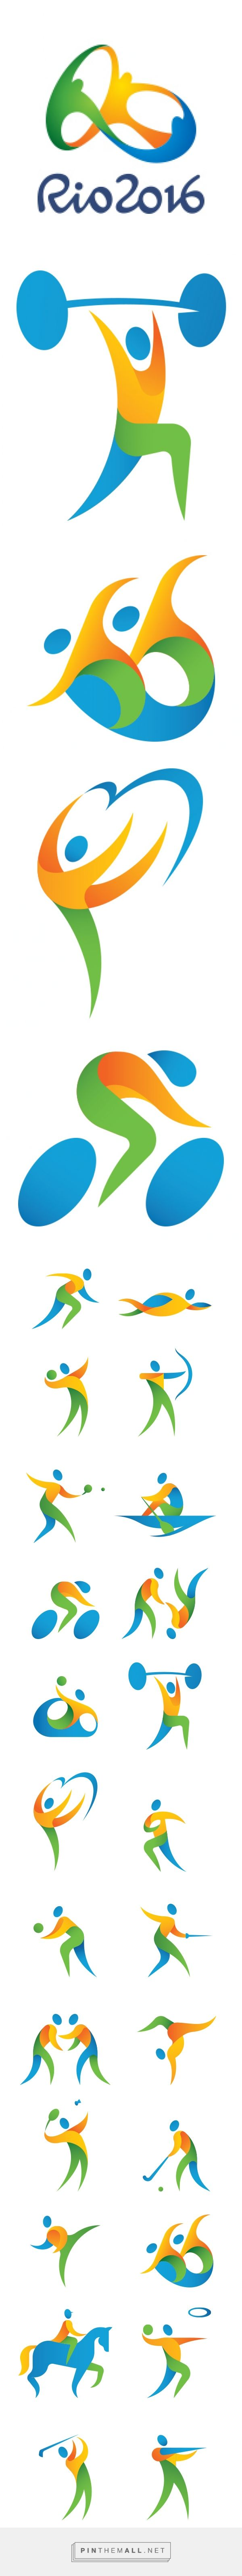 Olympic rings logo rio 2016 olympics logo designed by fred gelli - 2016 Rio Olympic Pictograms On Behance Https Www Behance Net